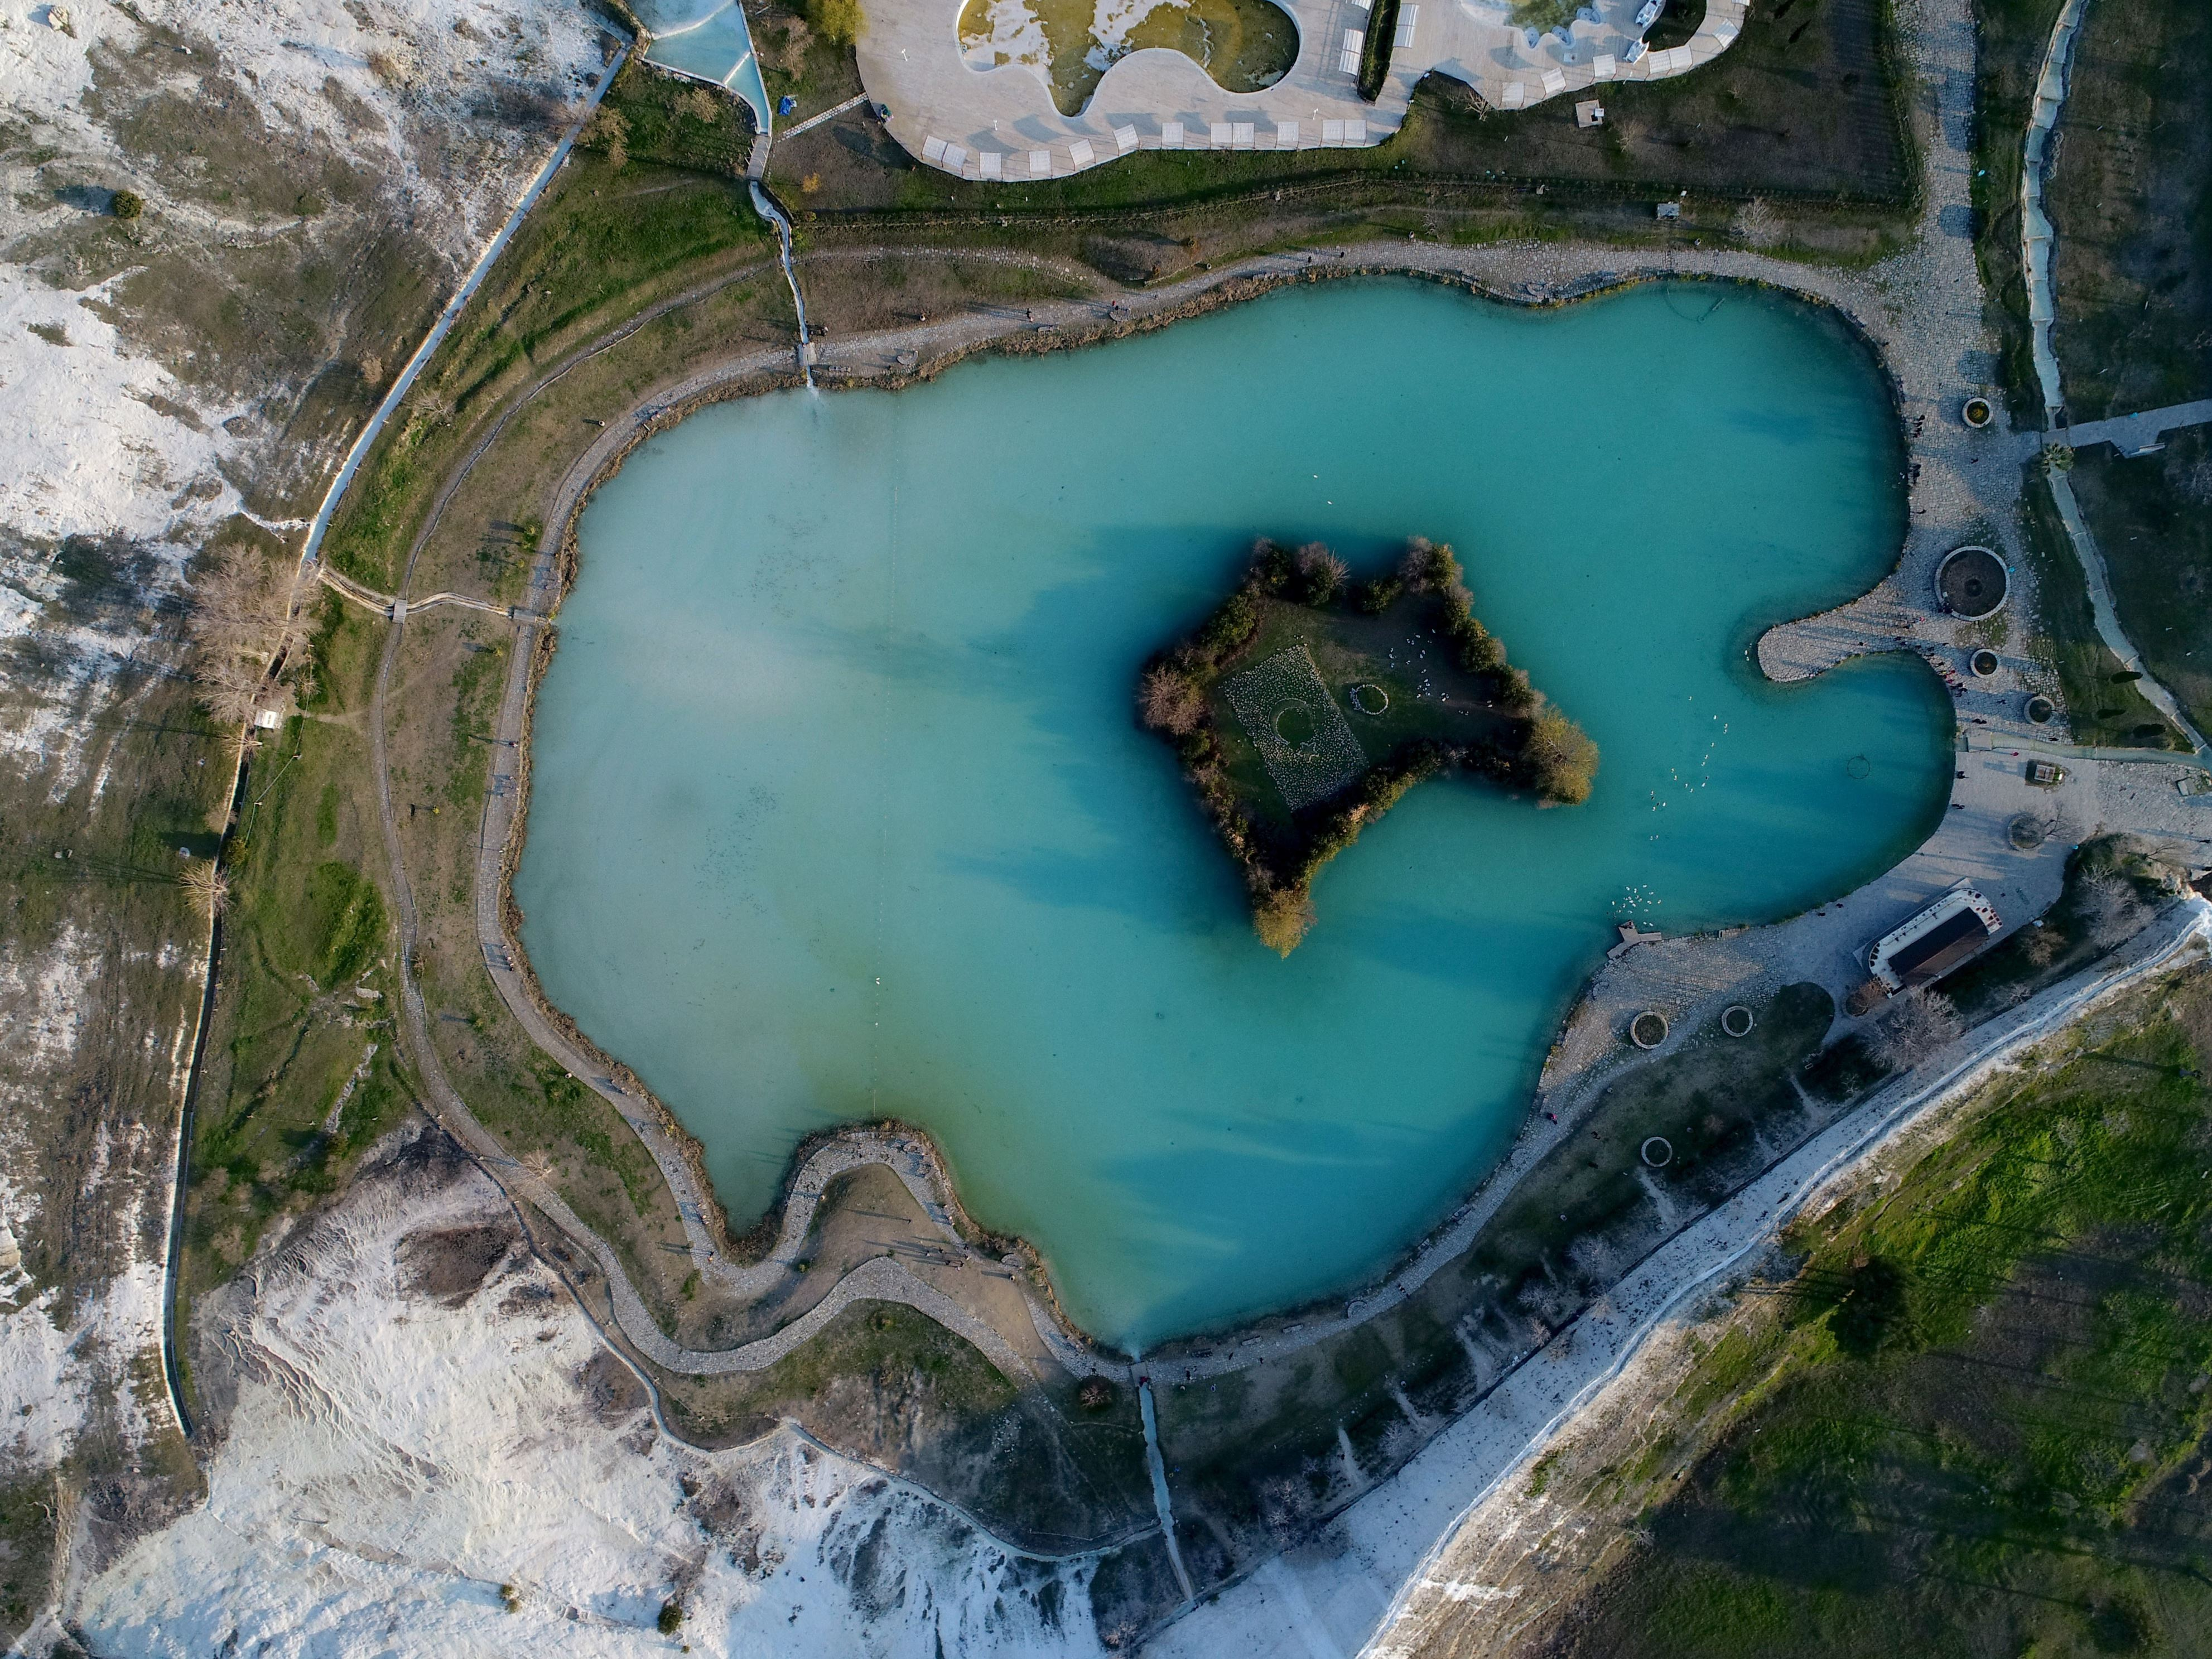 Slide 60 of 73: DENIZLI, TURKEY - JANUARY 6: A drone photo shows ancient city of Hierapolis and hot spring travertine pools and terraces at the UNESCO World Heritage Site of Pamukkale in Denizli, Turkey on January 6, 2017. Warm water at a temperature of 33-36 containing calcium hydro carbonate springing from 320 meters depth appears on the surface and water falls into terraces and forms the travertines.